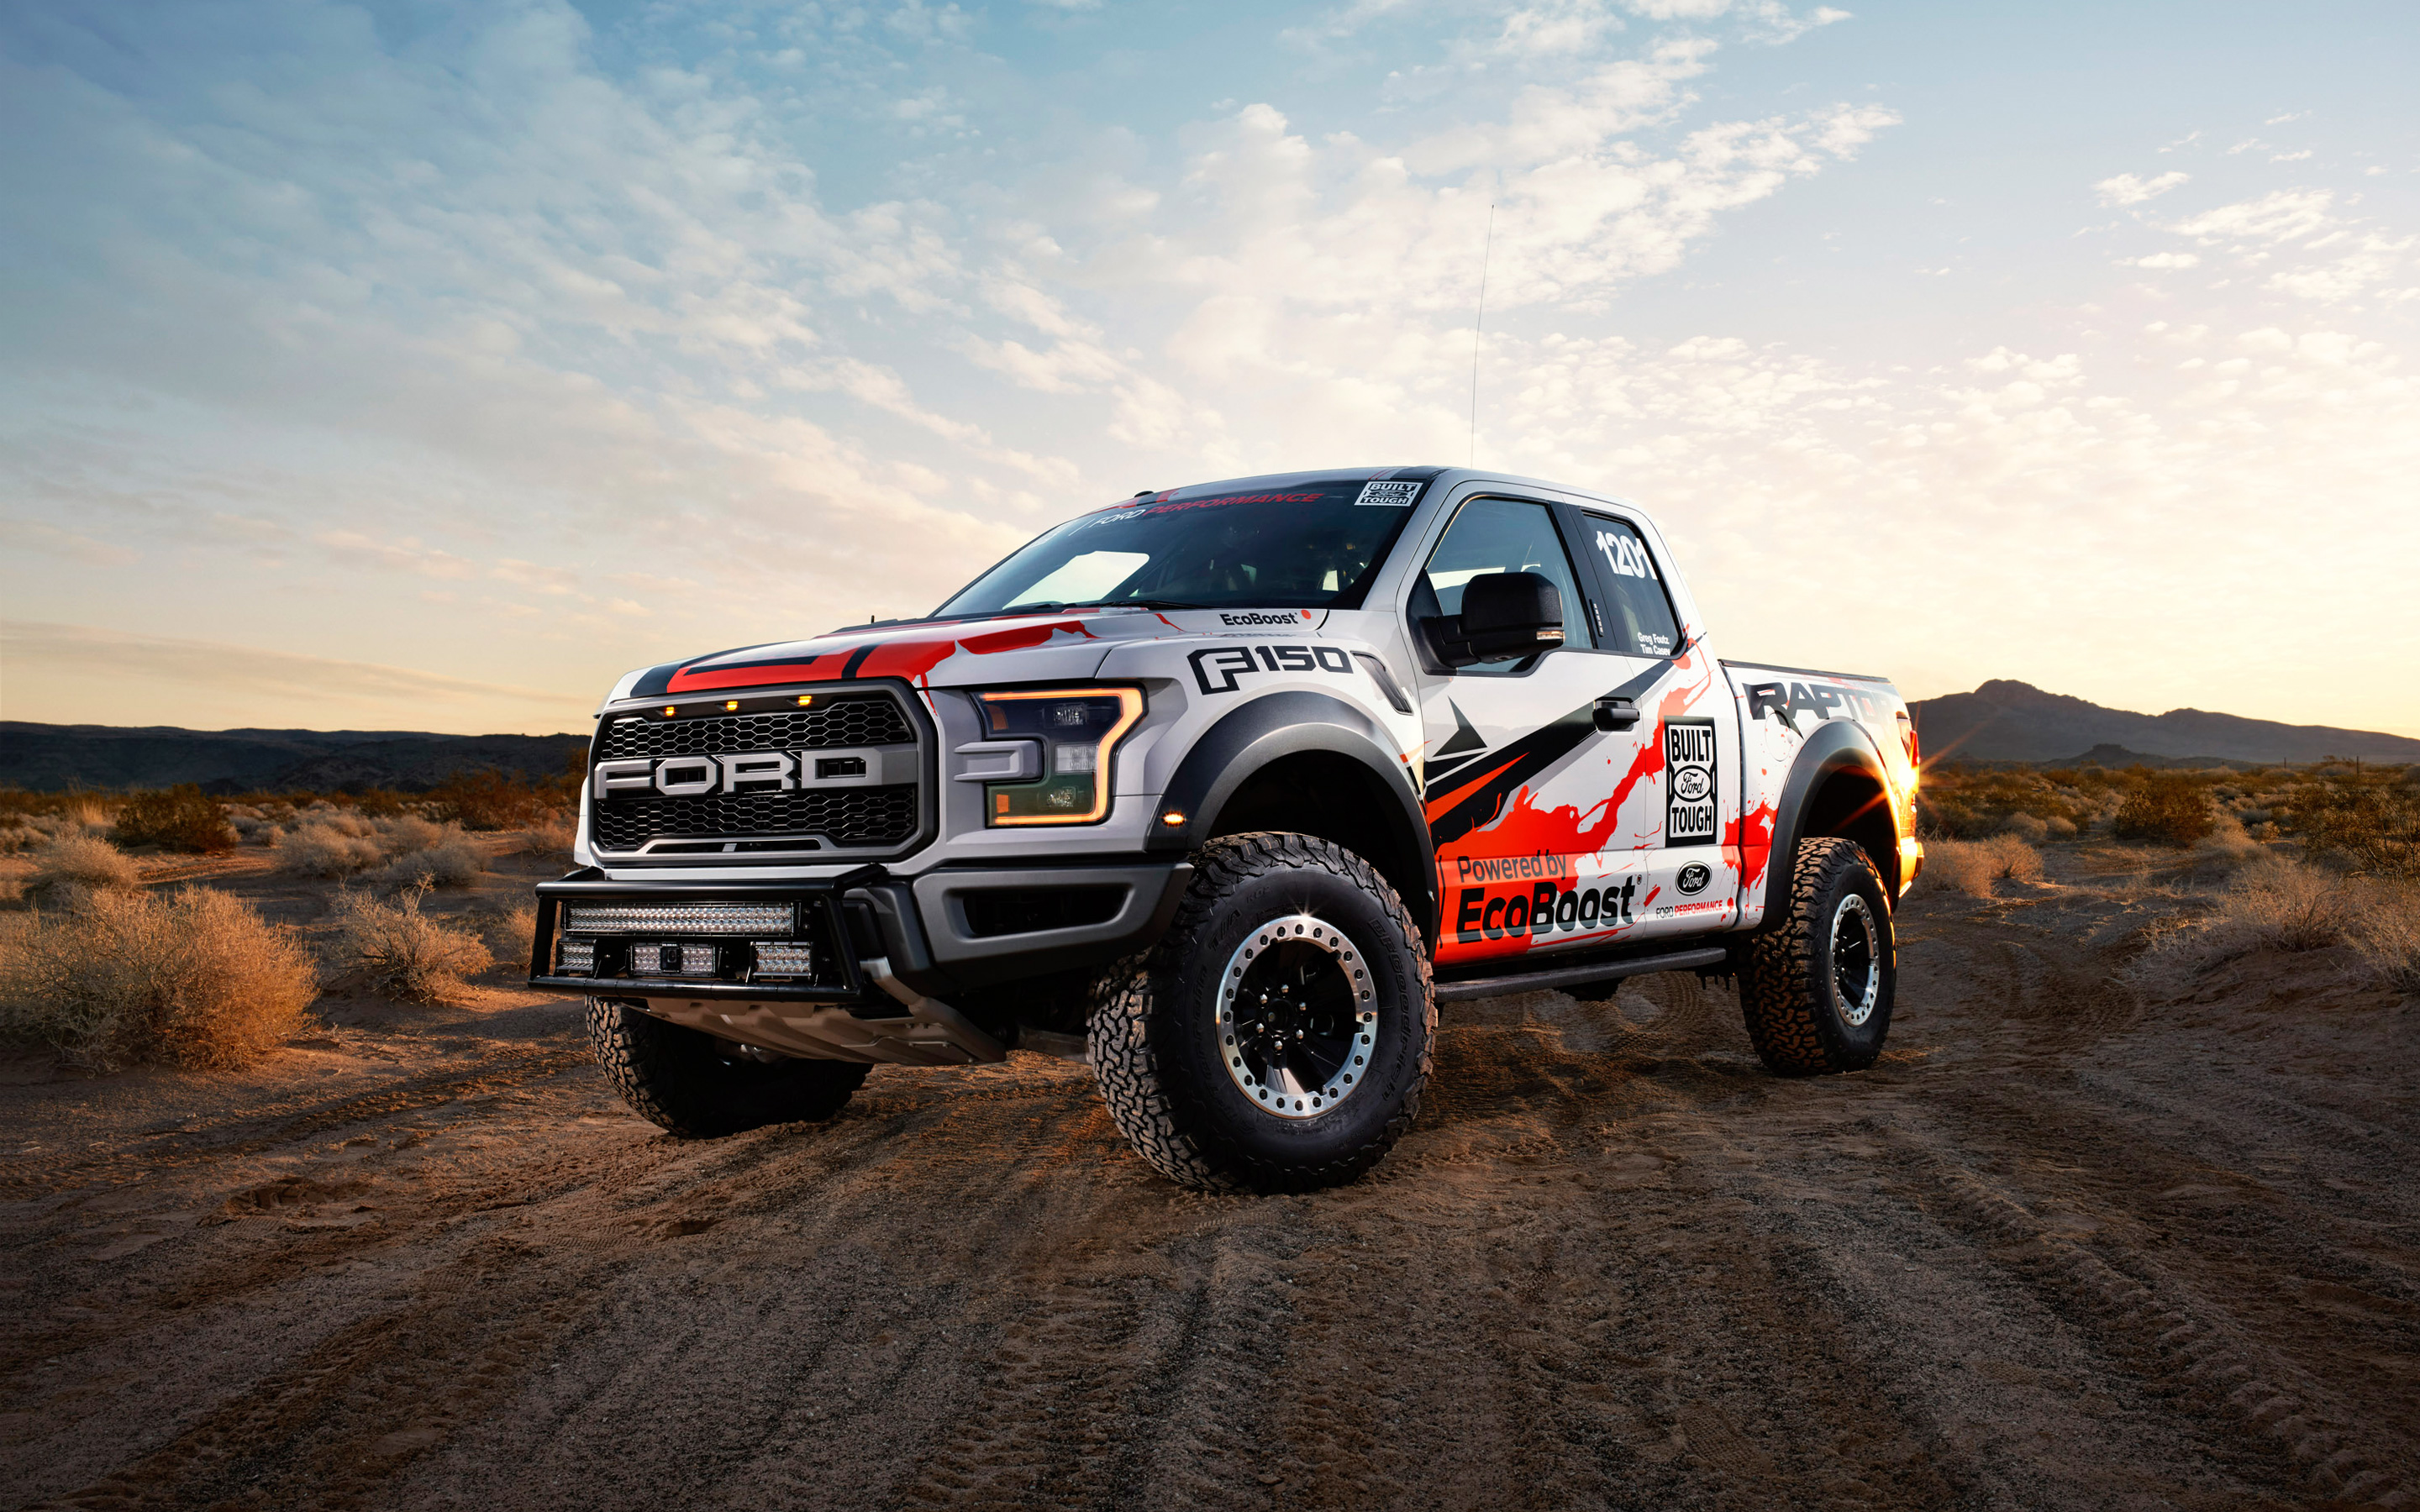 Ford F 150 Raptor 2016 Wallpapers HD Wallpapers 2880x1800